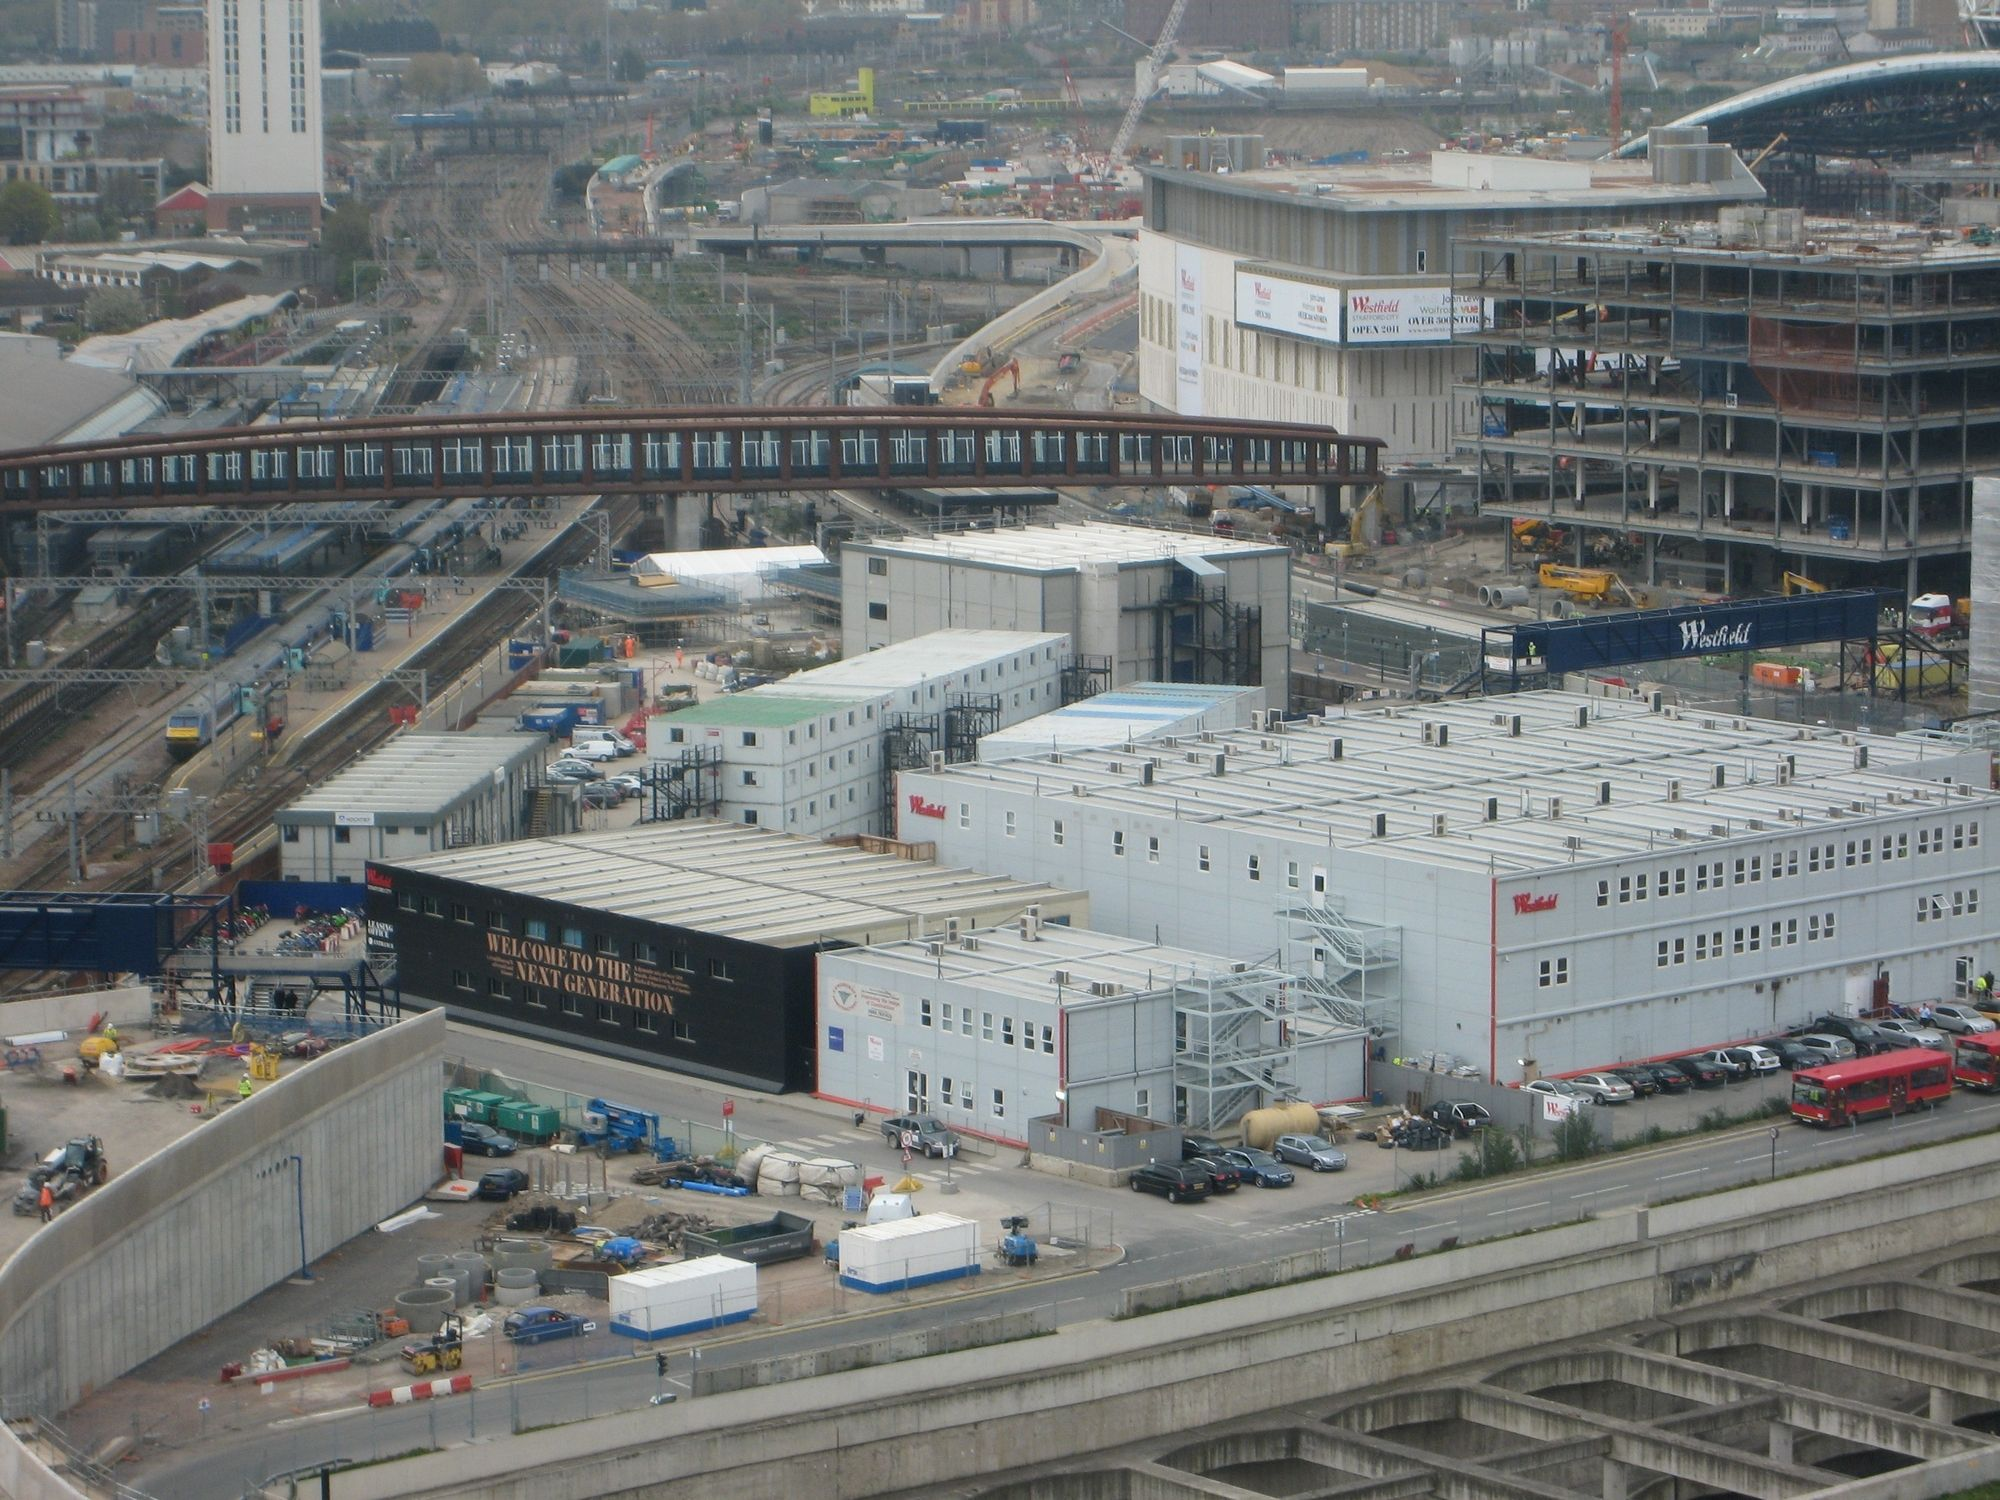 The Olympics have kick-started the regeneration of Stratford